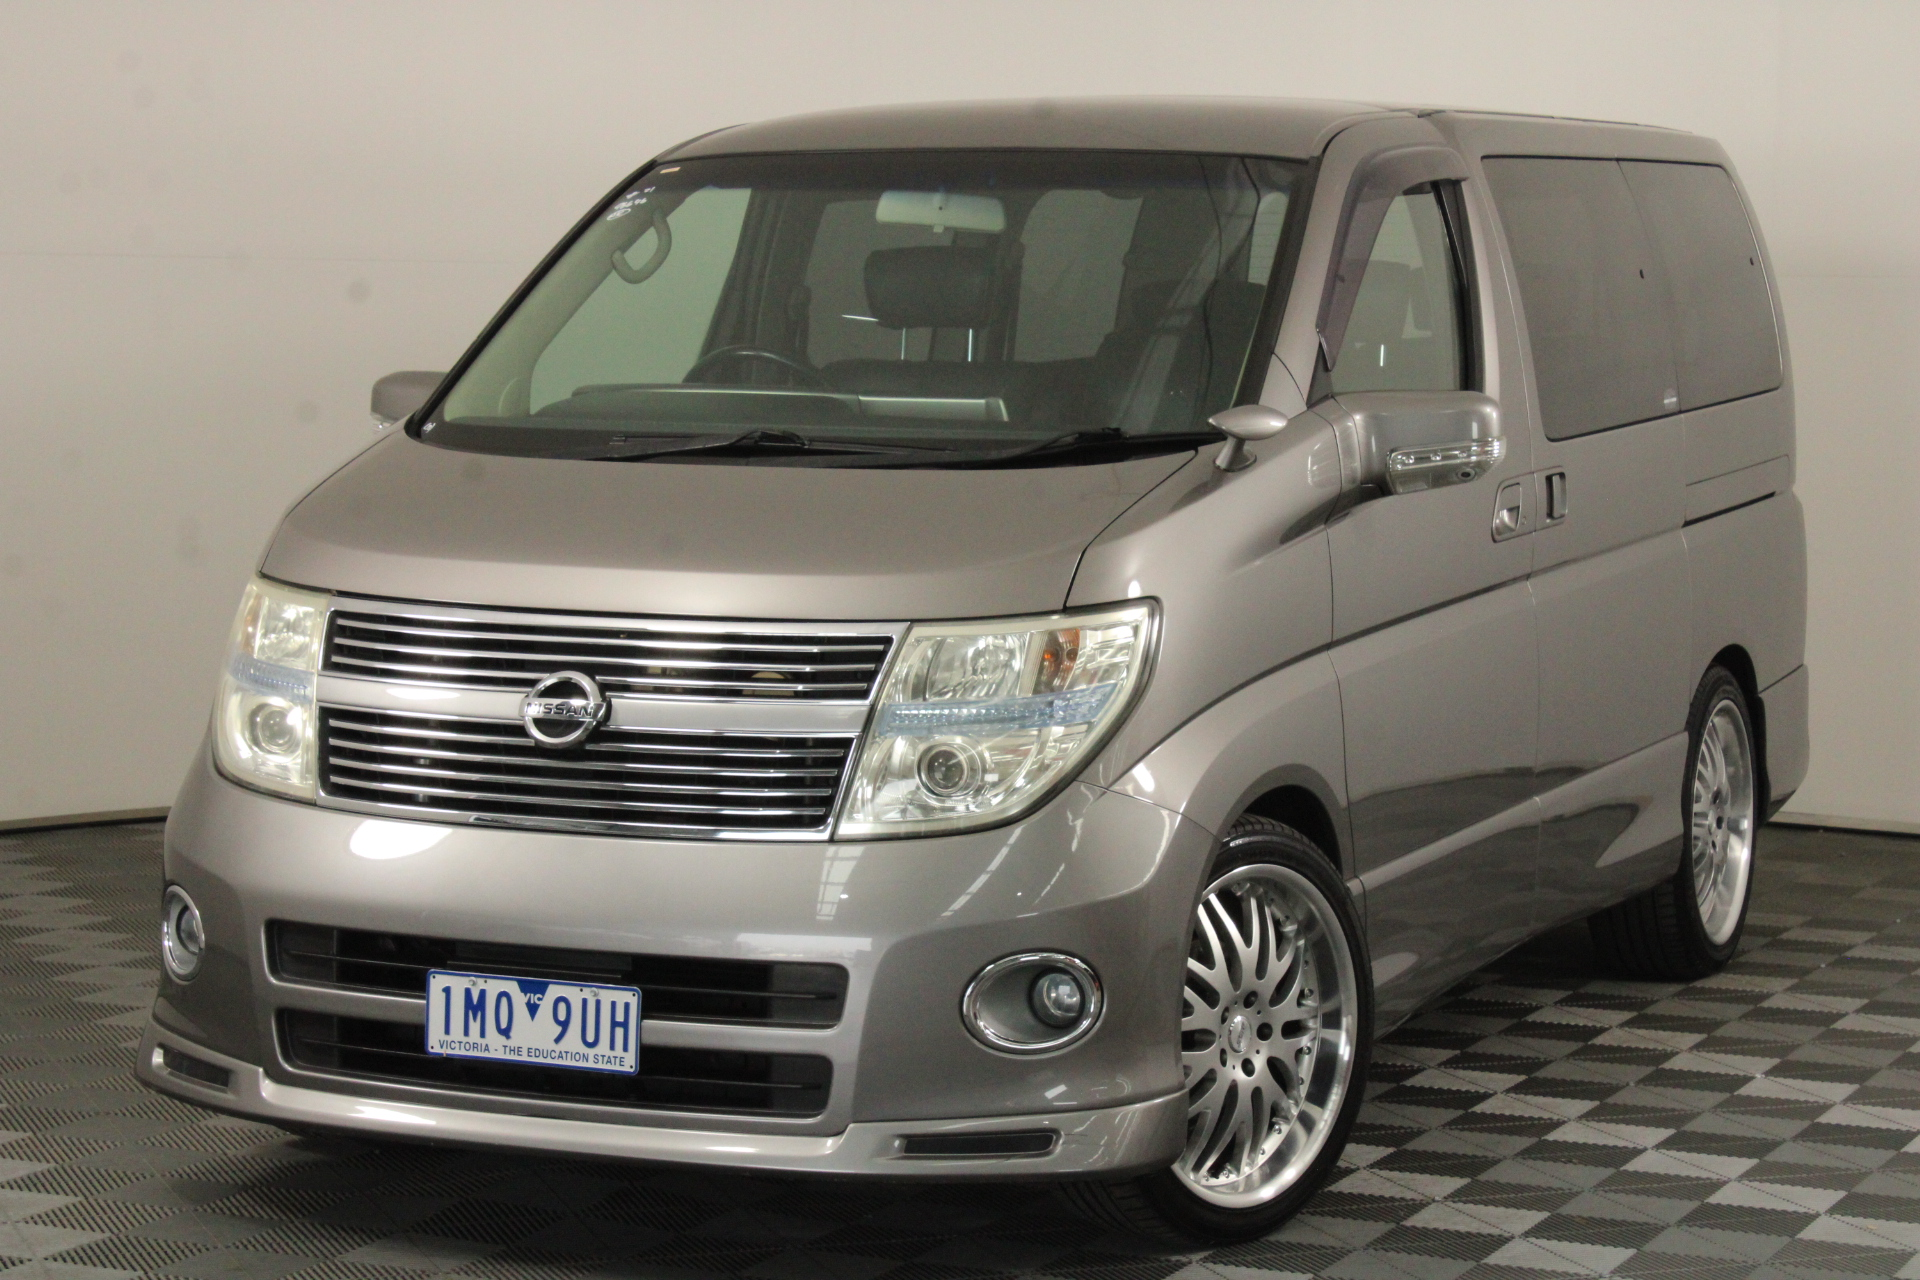 2018 Nissan Elgrand Automatic 8 Seats People Mover